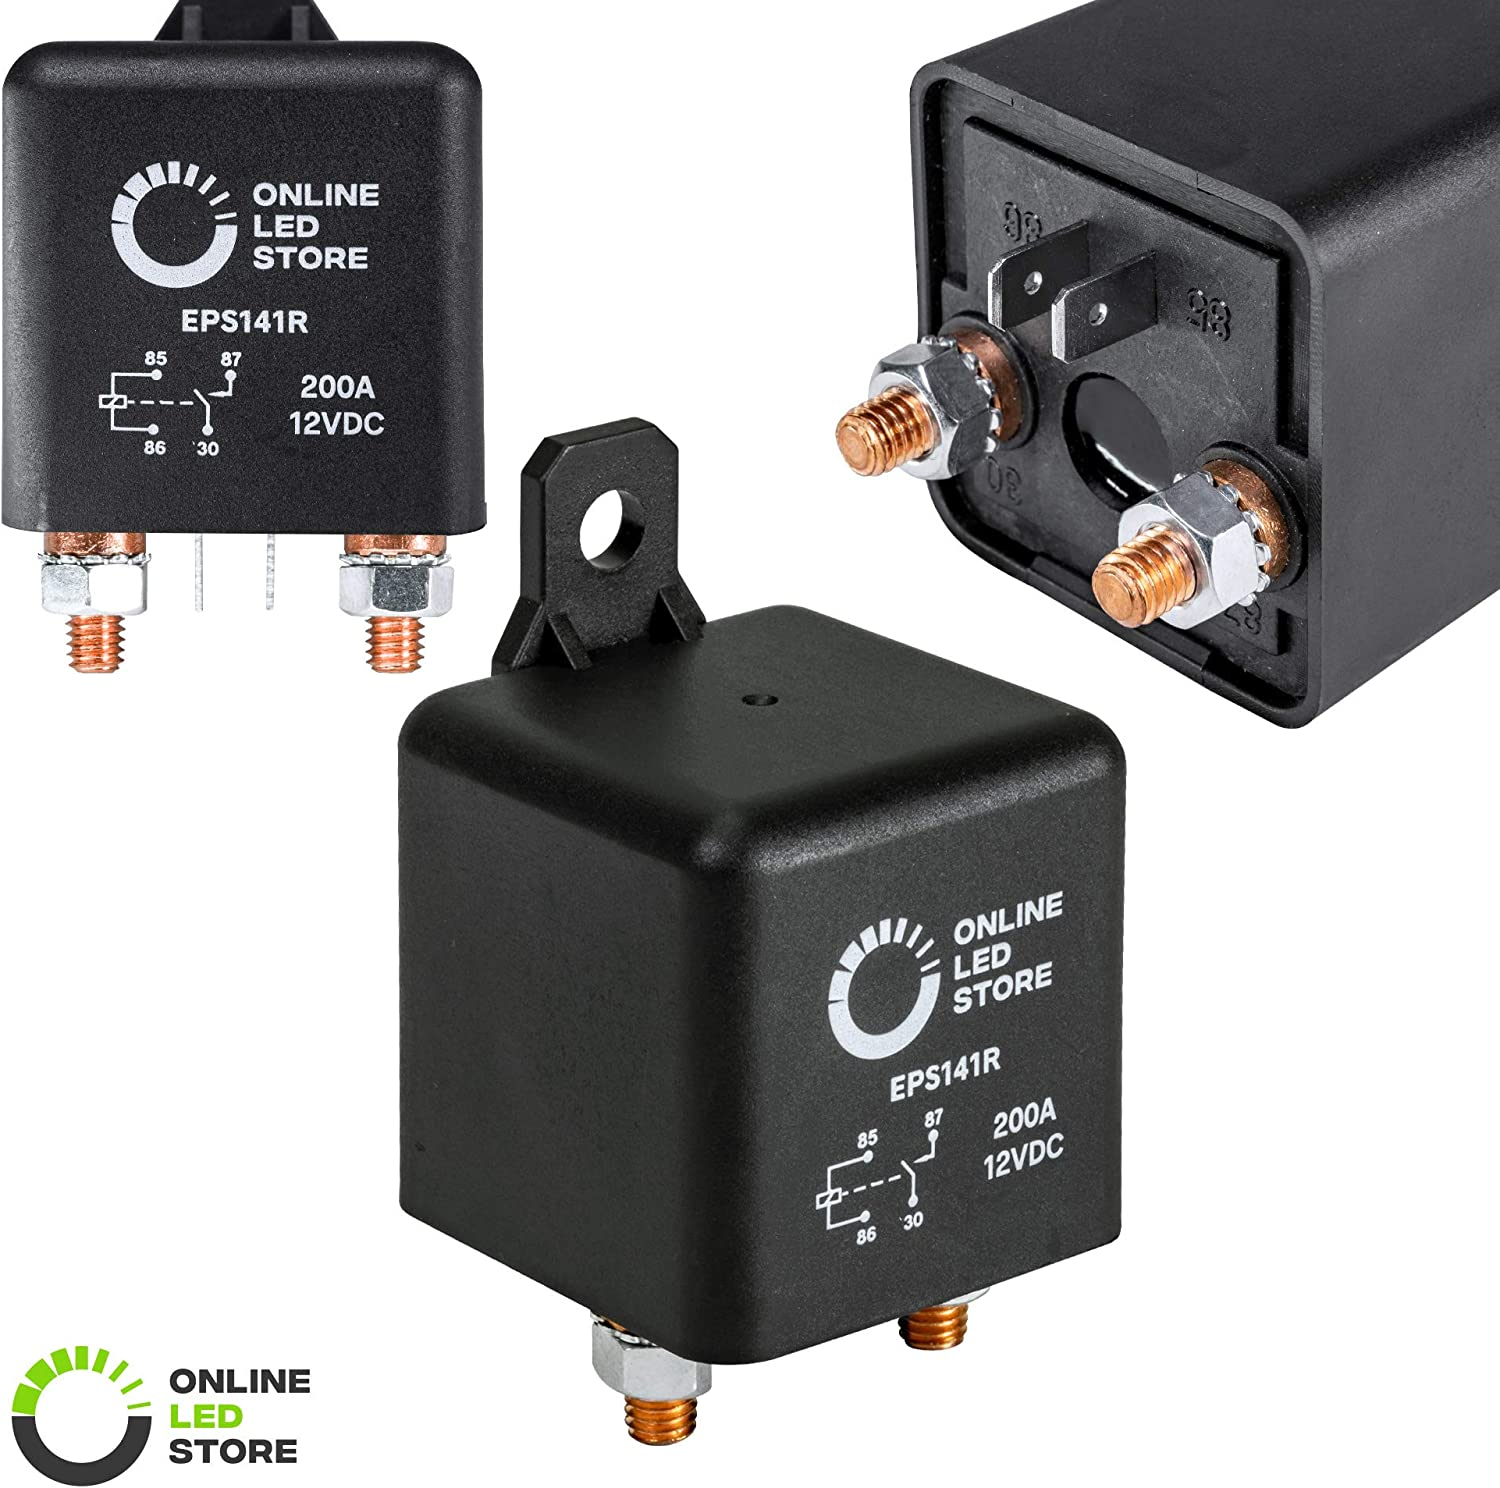 ONLINE LED STORE 12V DC 200 Amp Split Charge Relay Switch - 4 Terminal Relays for Truck Boat Marine